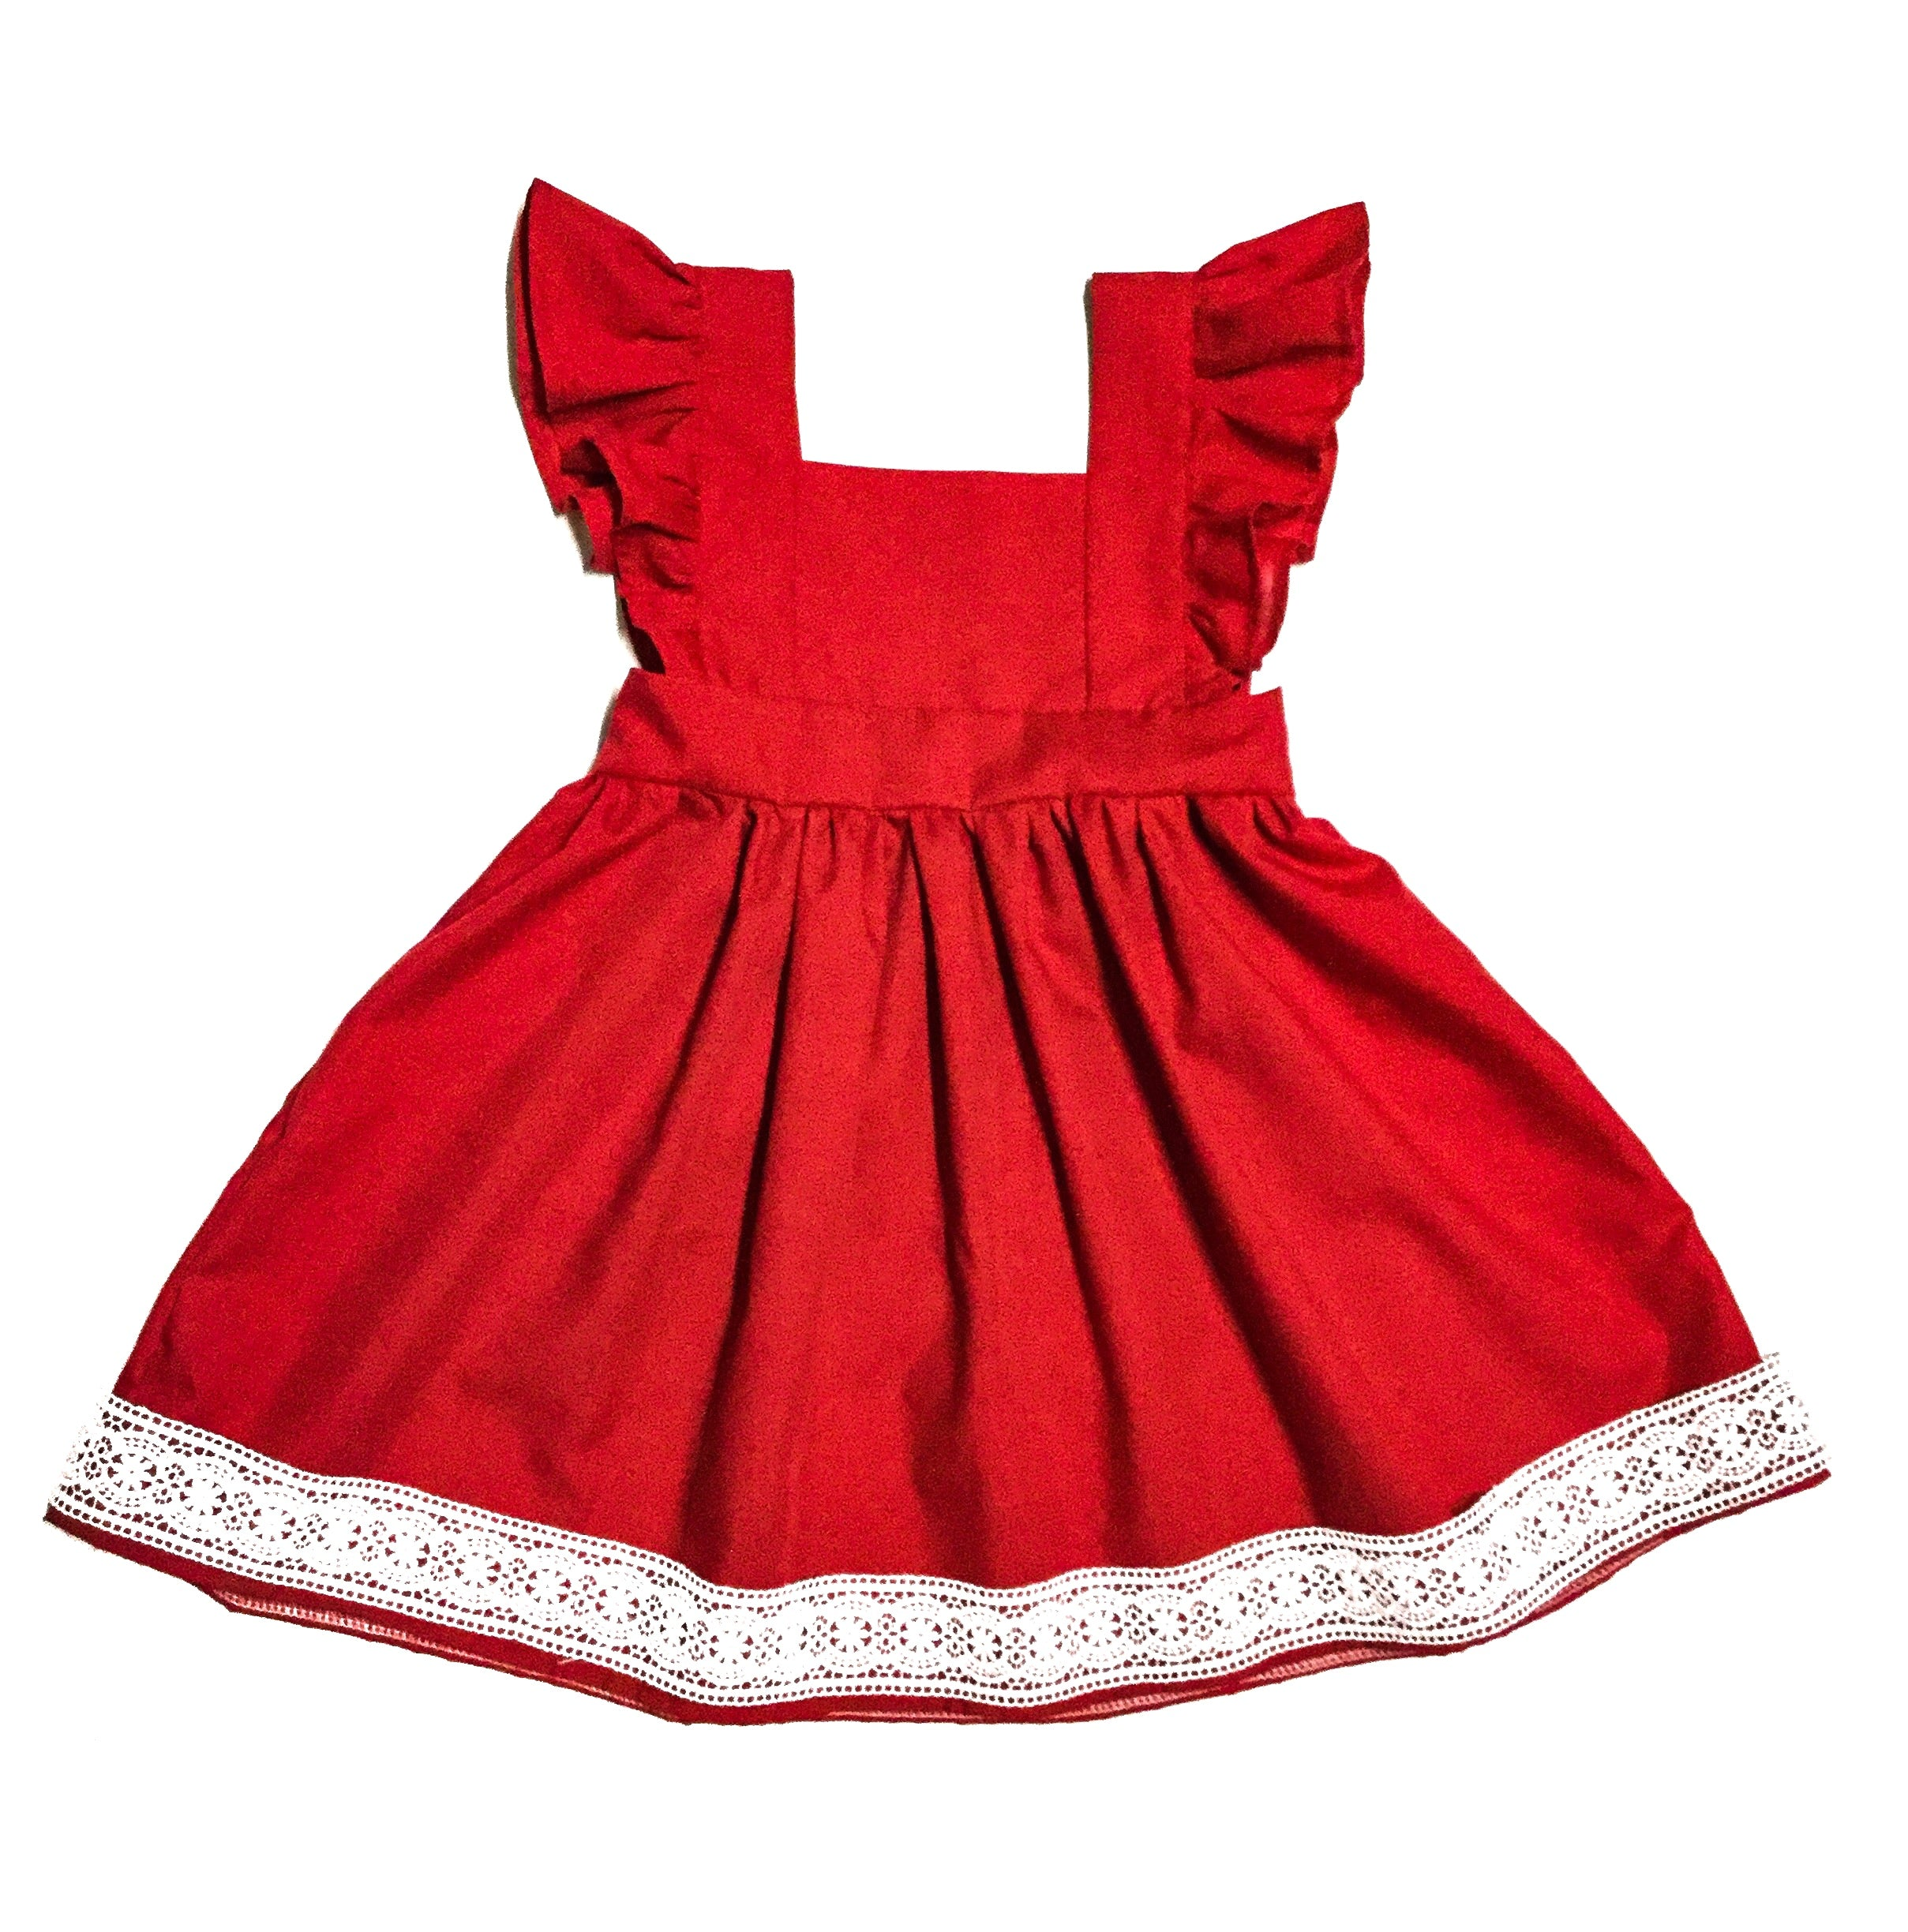 handmade vintage style dress with lace for little girls